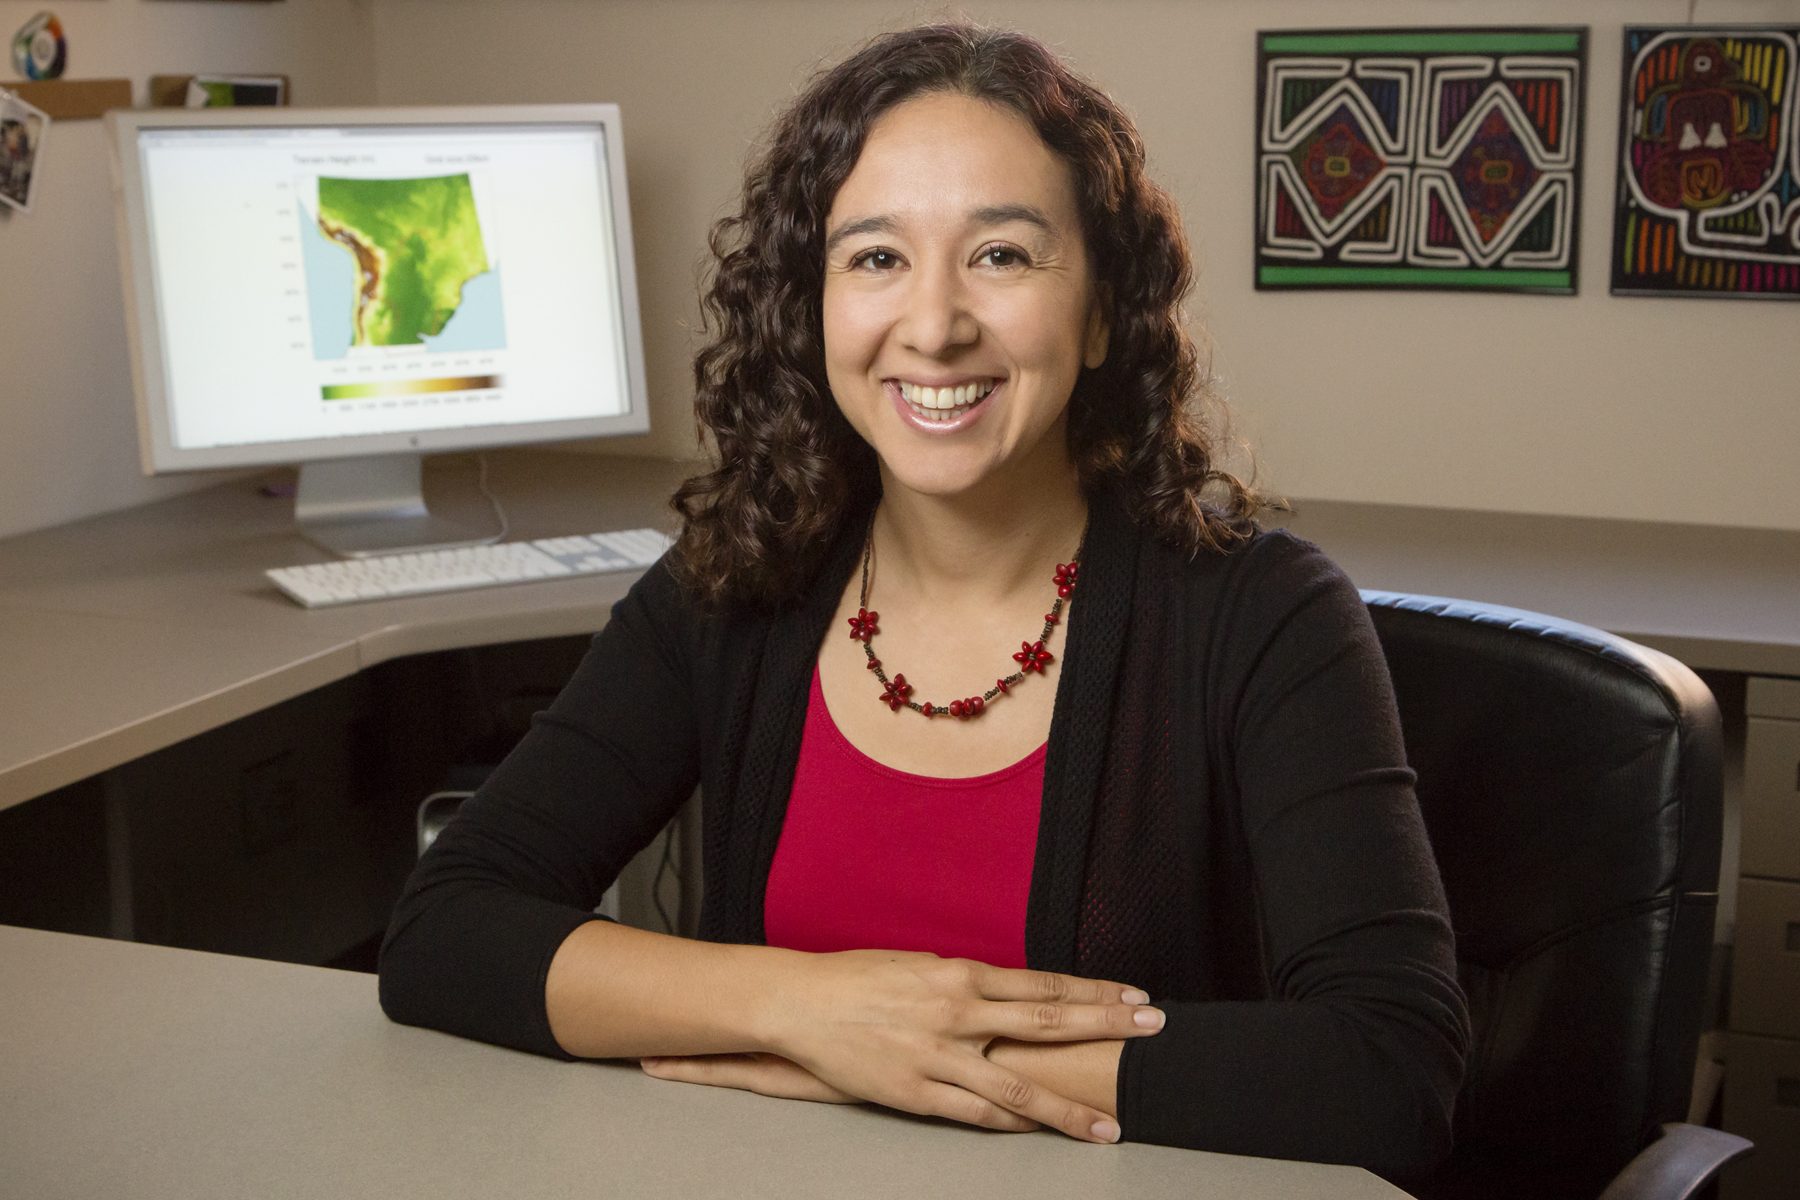 Francina Dominguez is a new assistant professor in the department of atmospheric sciences. She also is an alumna of the University of Illinois, earning her Ph.D. and M.S. in civil and environmental engineering at the Urbana-Champaign campus.